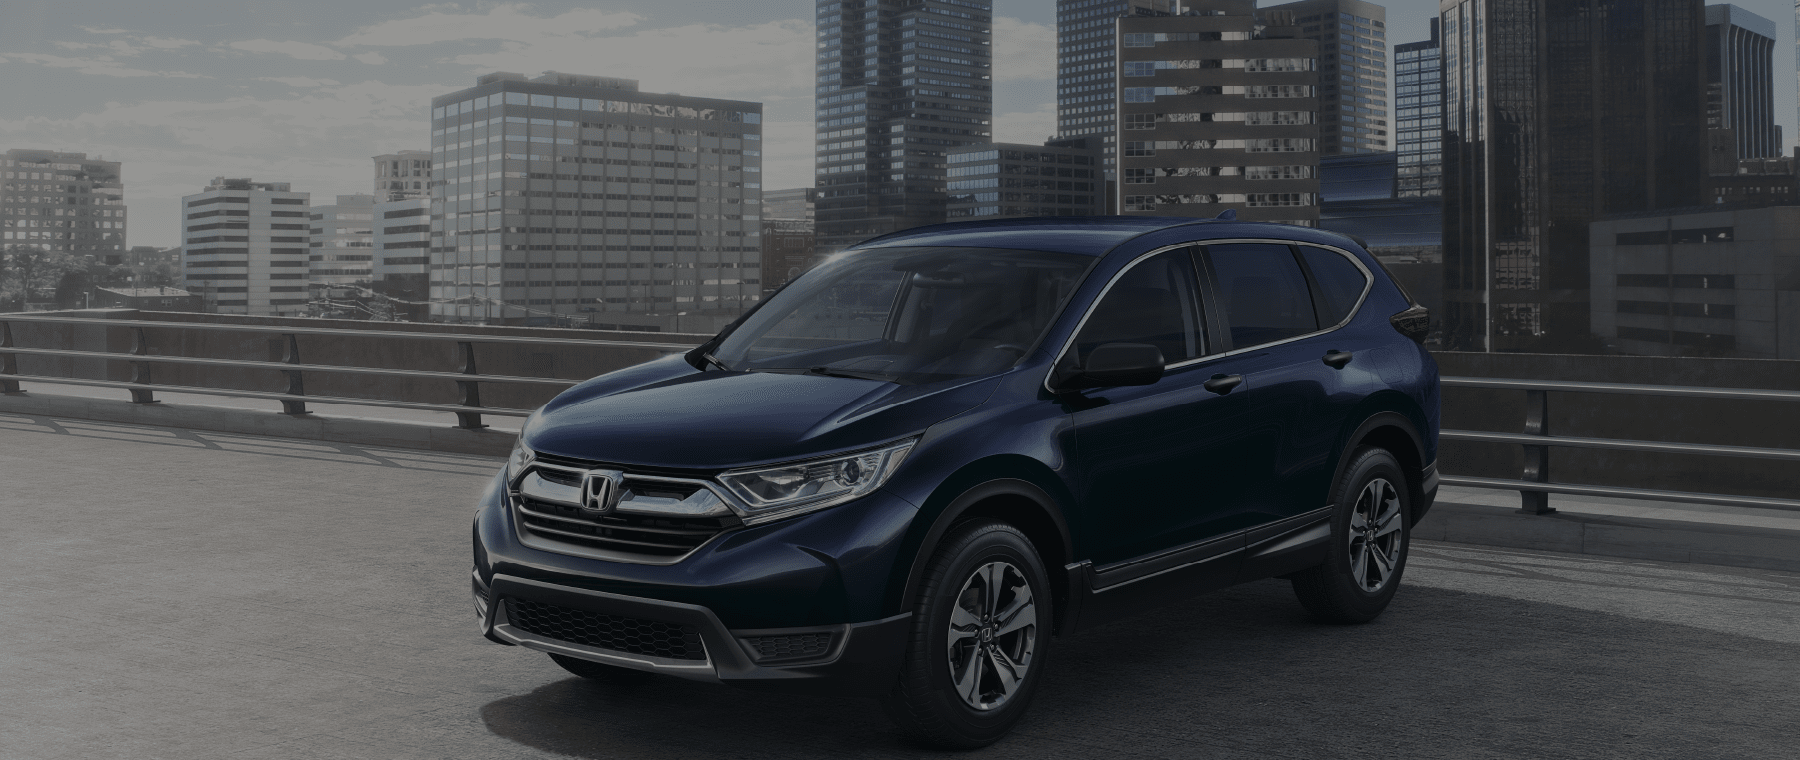 Honda North New Used Vehicles Danvers Ma Pilot Replacement Parts Motor Repalcement And Diagram